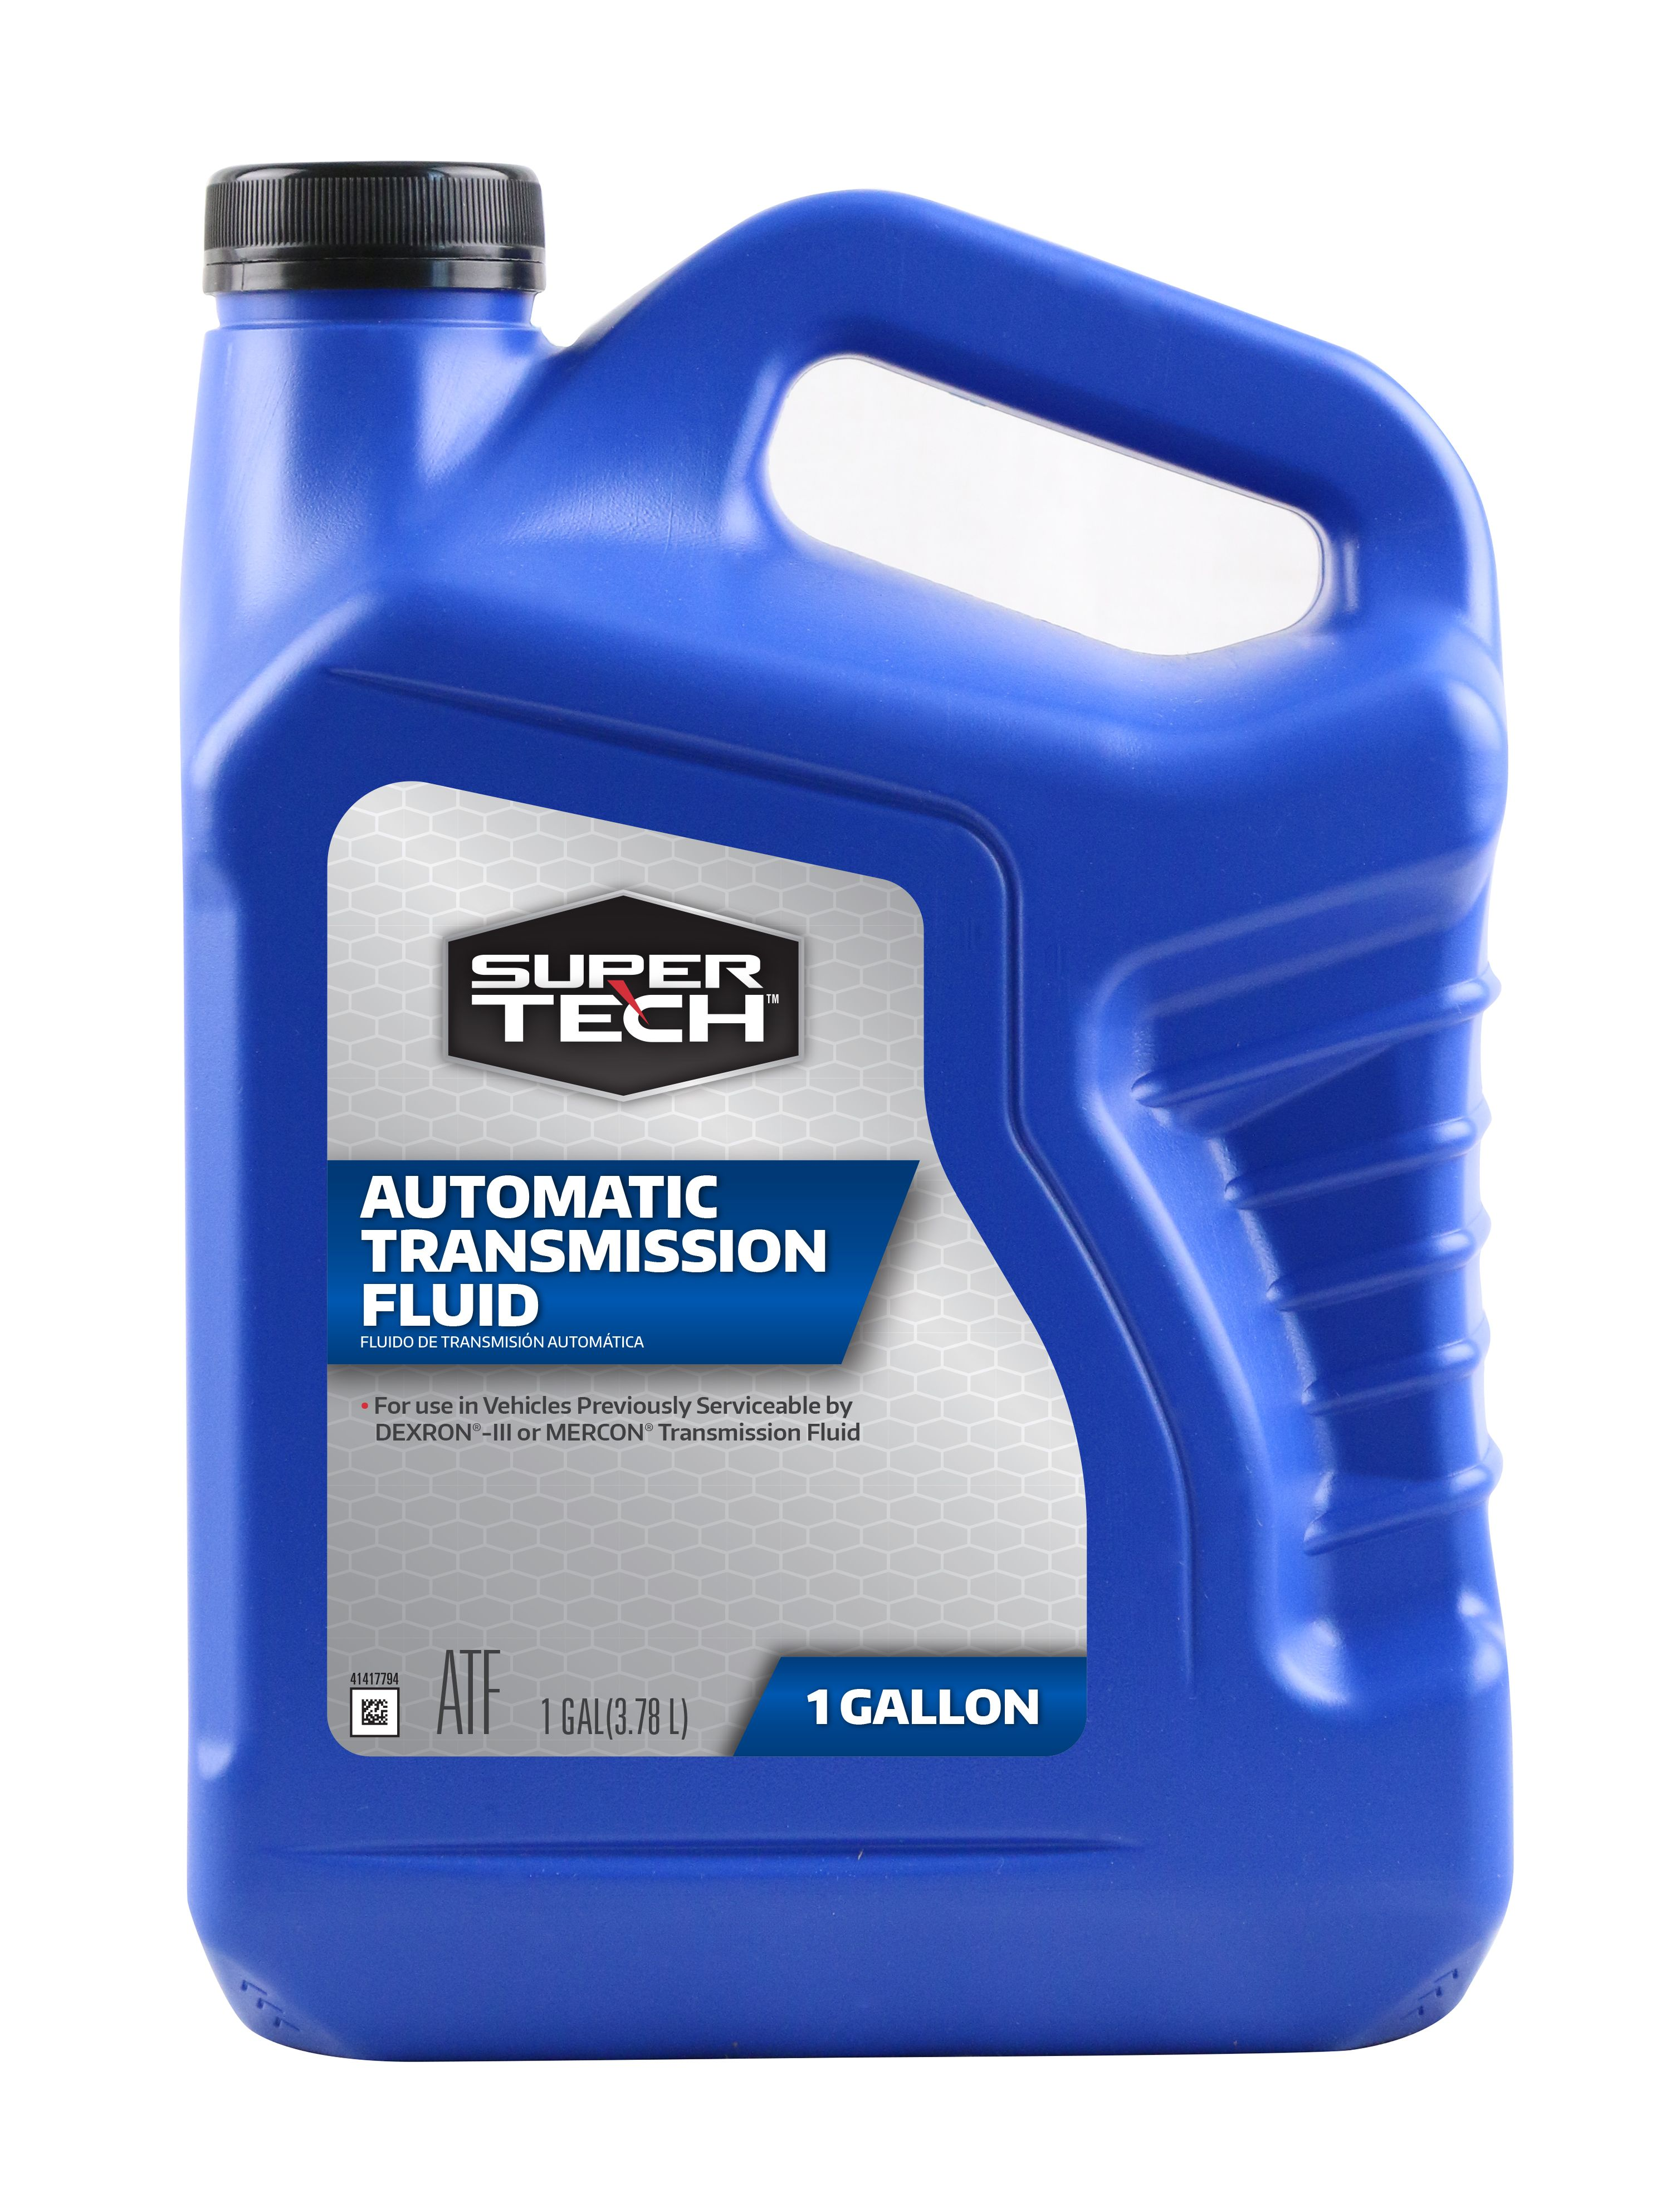 Super Tech Automatic Transmission Fluid, 1 Gallon - Walmart com